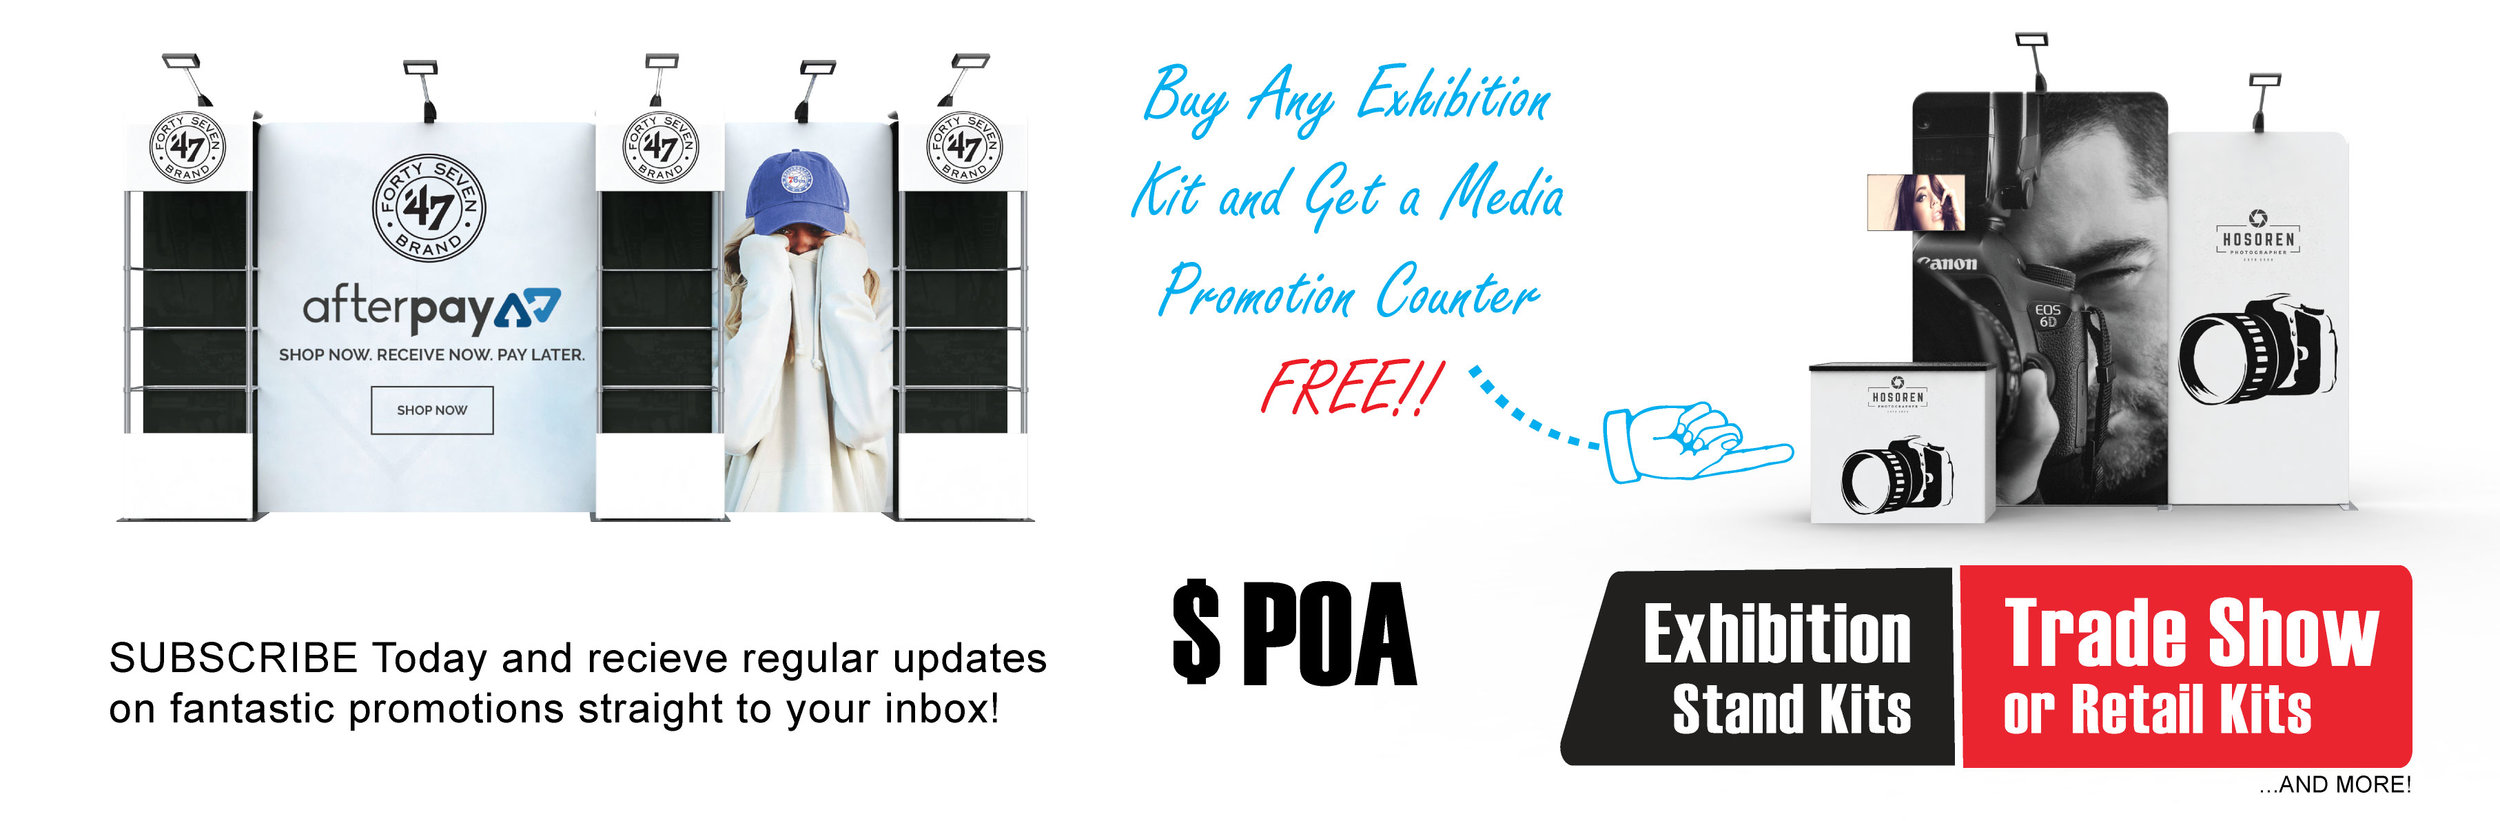 Exhibition Stand Display Kits